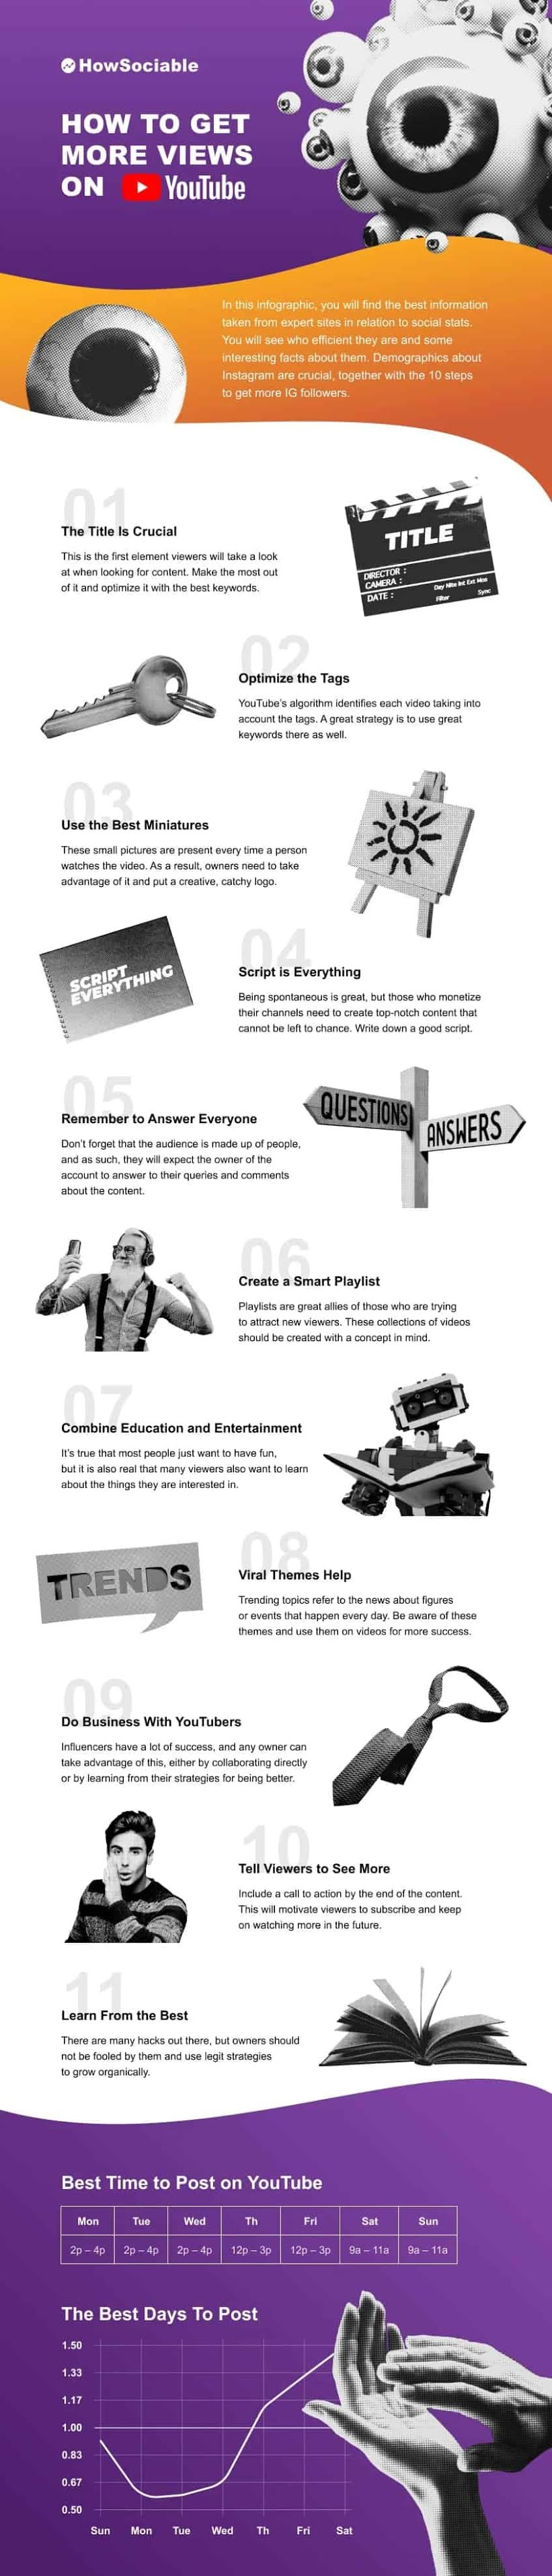 How to Get More Views on YouTube #infographic